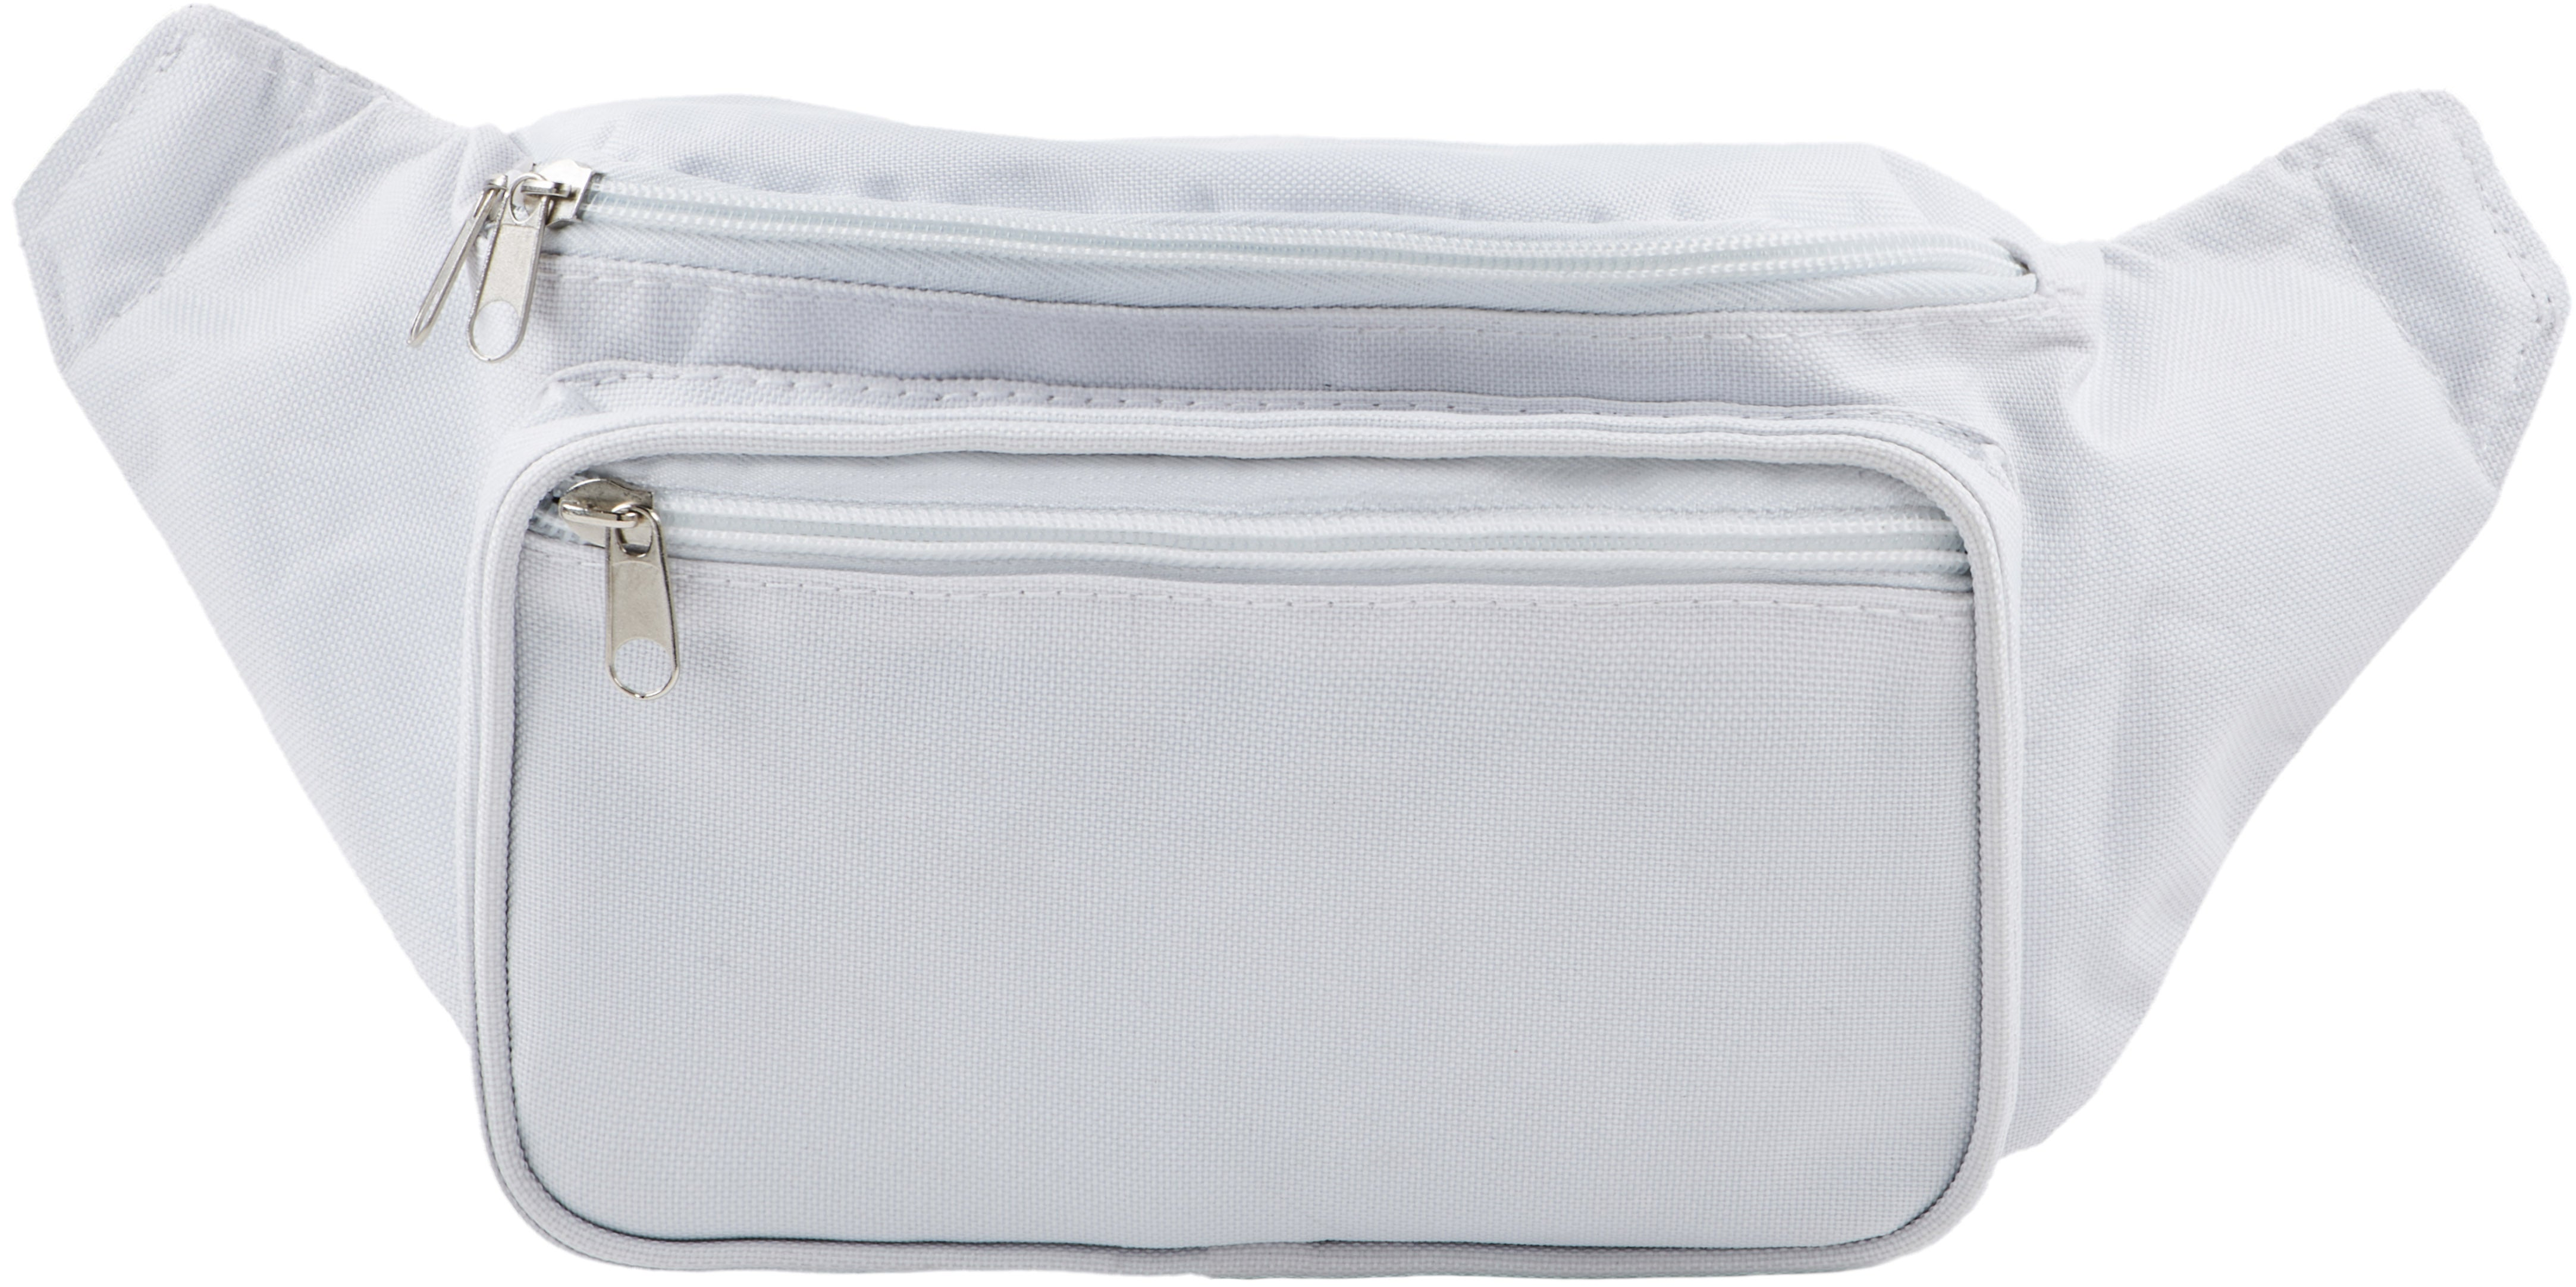 03d4f4be65dc Fanny Pack Solid Color Fanny Pack (White) - SoJourner Bags